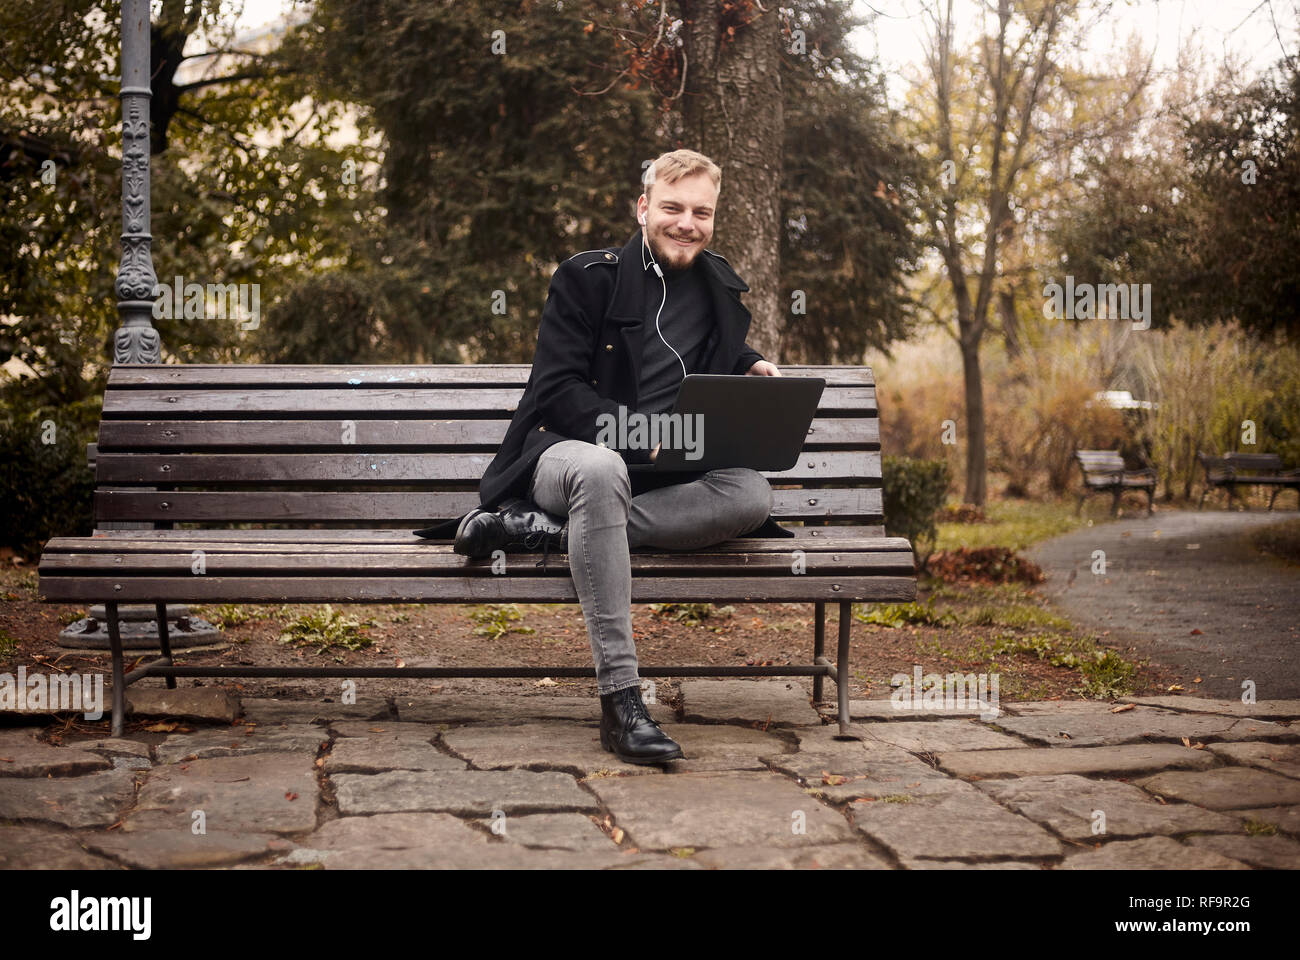 one young smiling and happy man, sitting on bench in public park,  using laptop, looking to camera. Formal wear or smart casual. Full length shot. - Stock Image